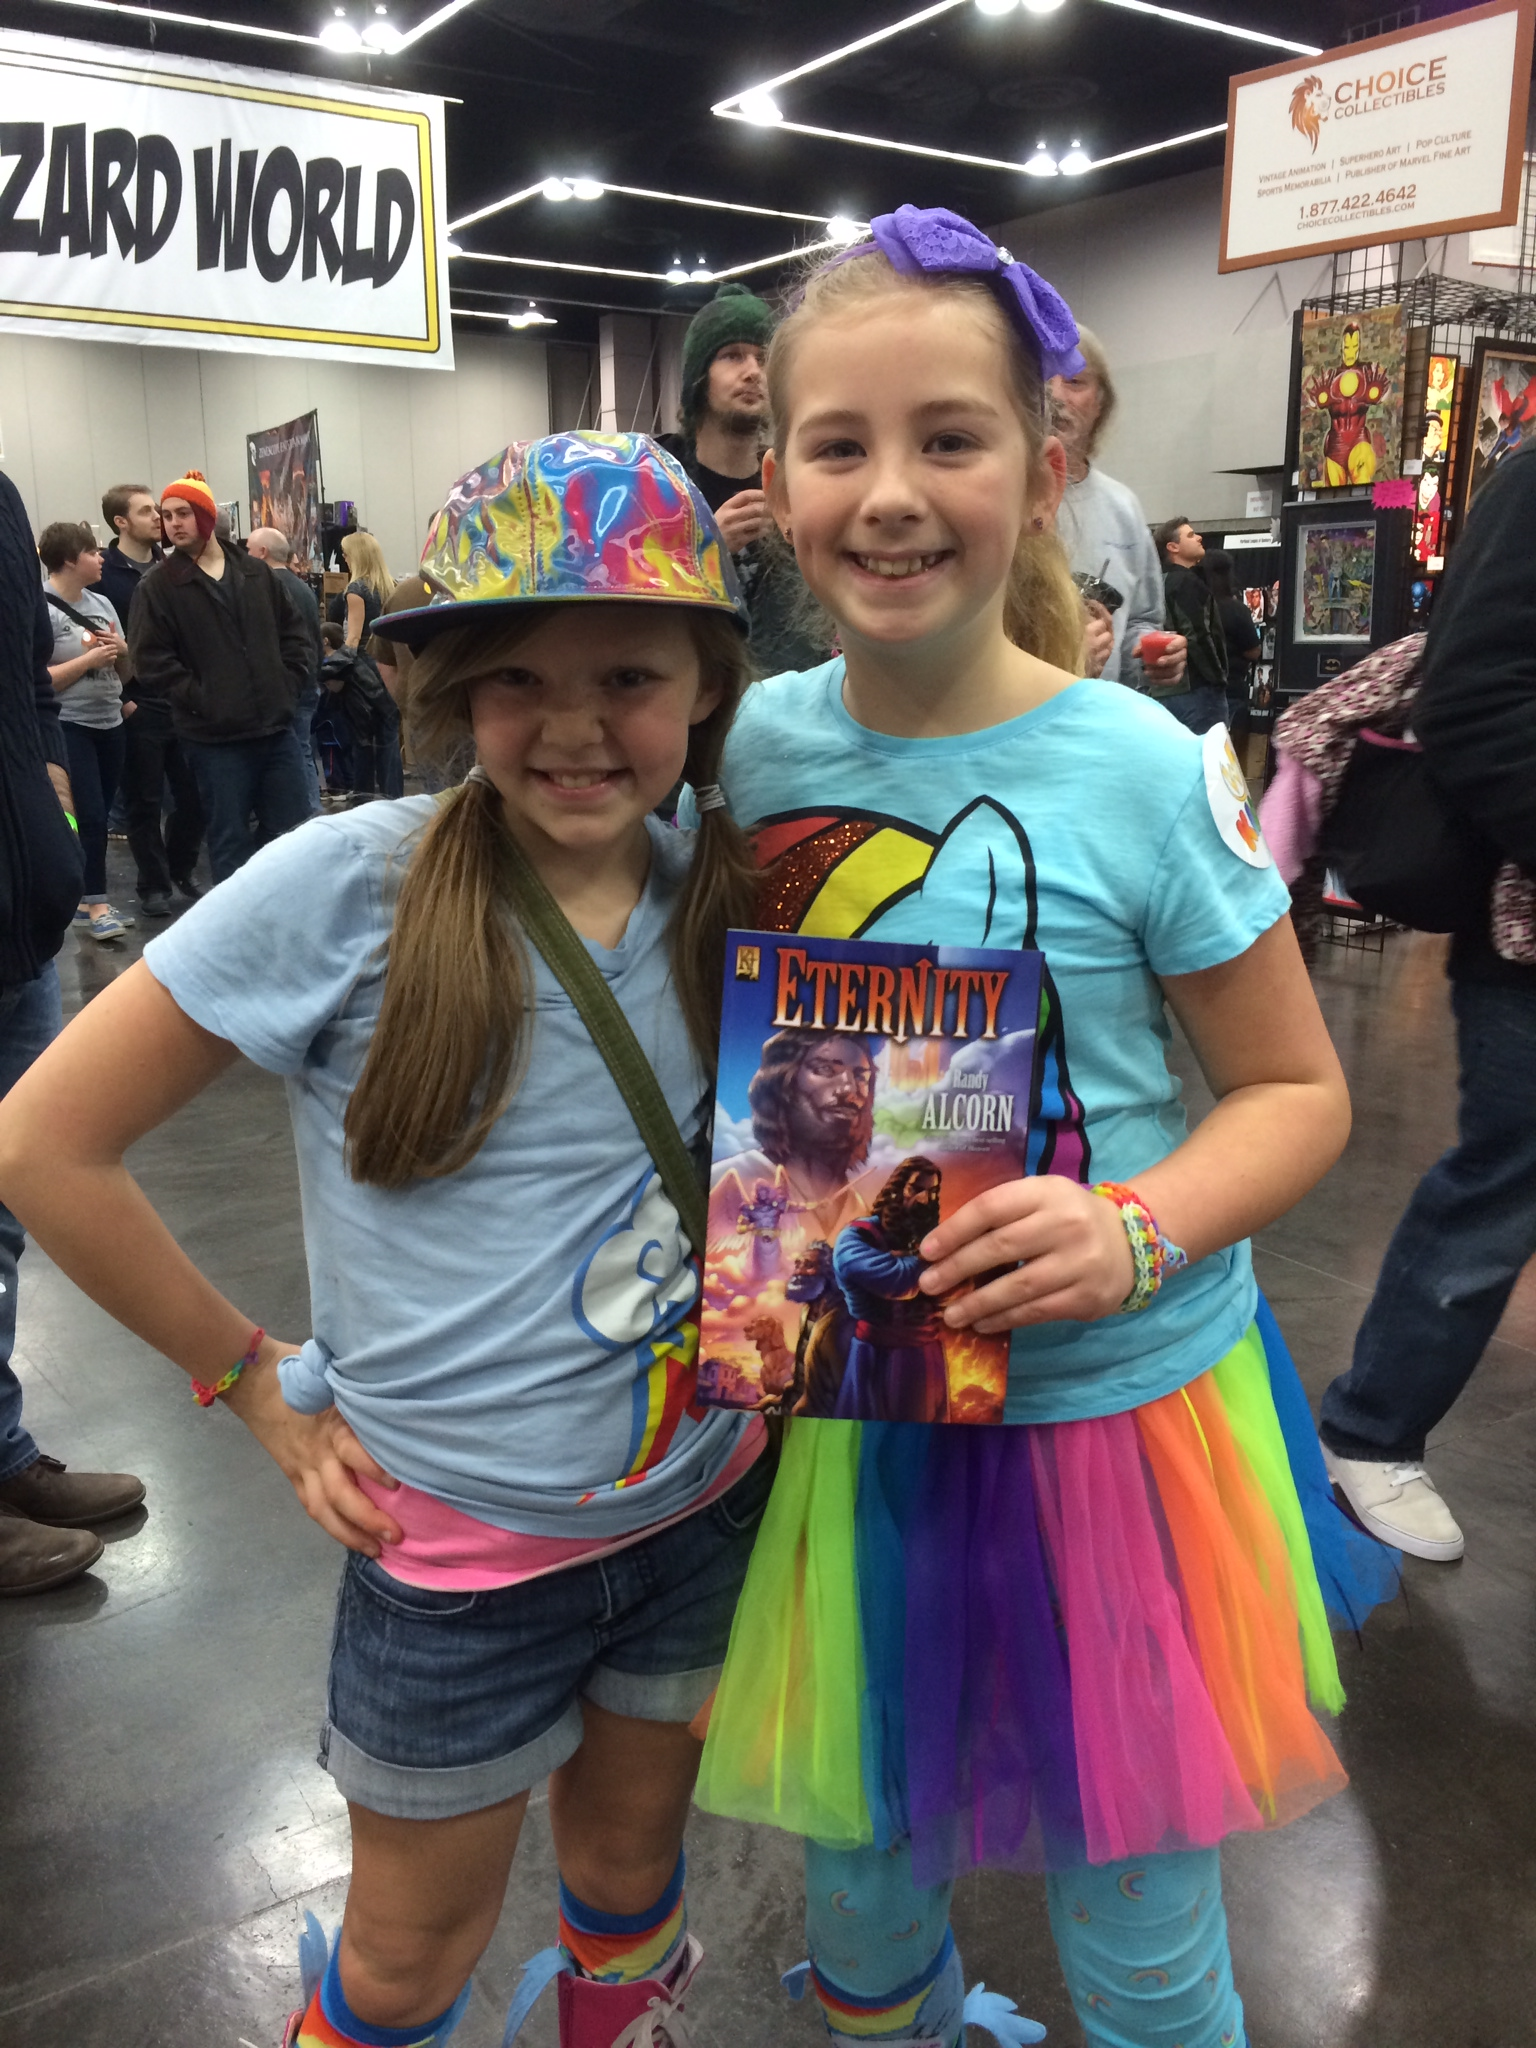 Young readers with Randy Alcorn's Eternity graphic novel